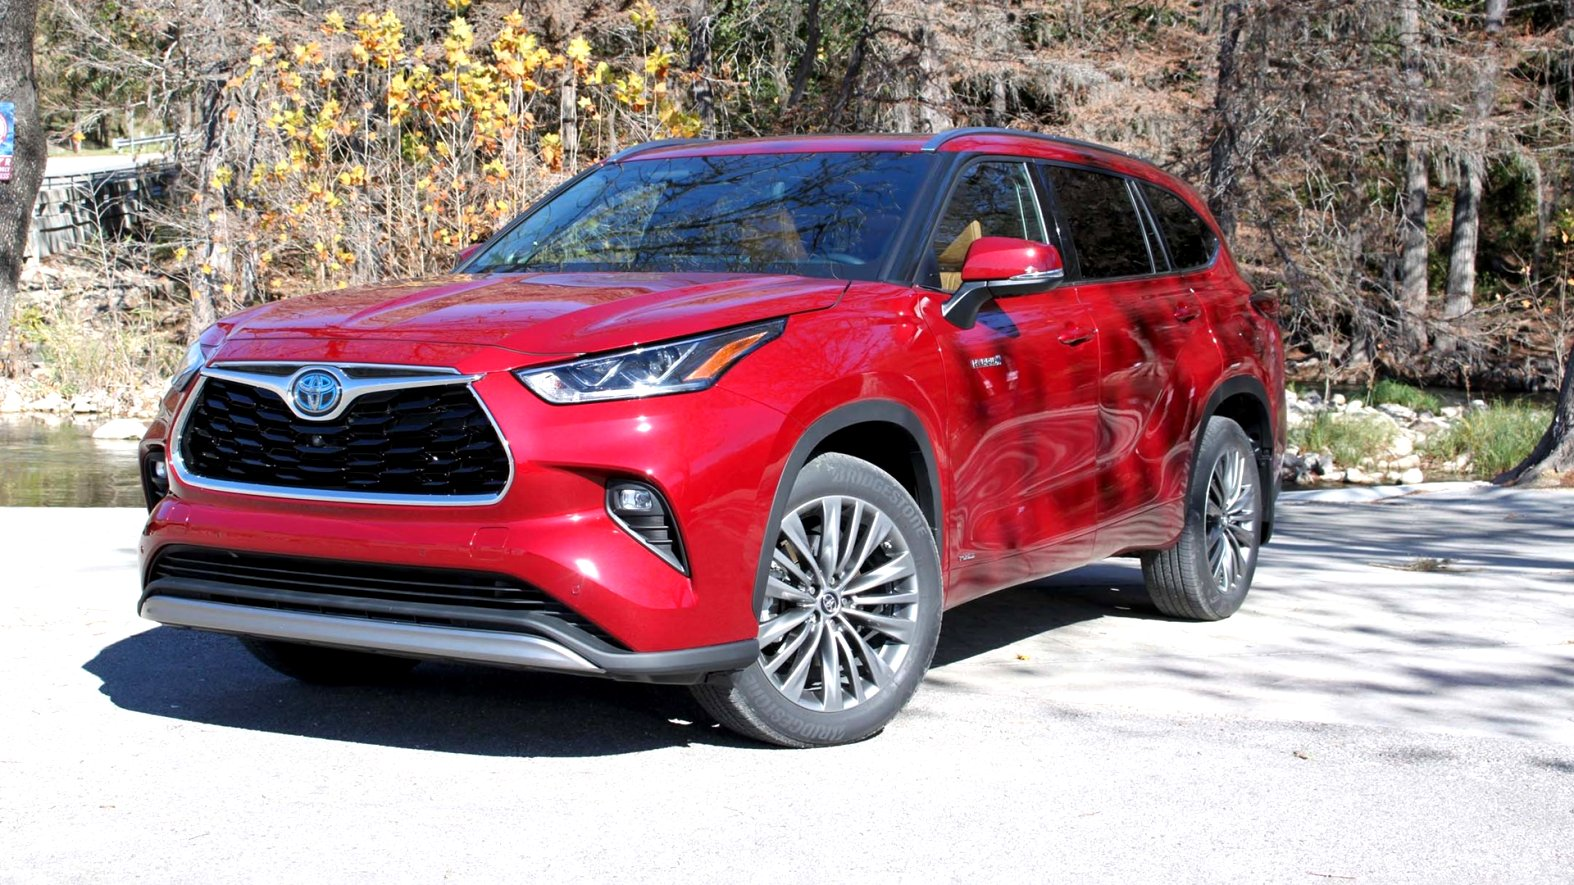 2020 toyota highlander review Pictures